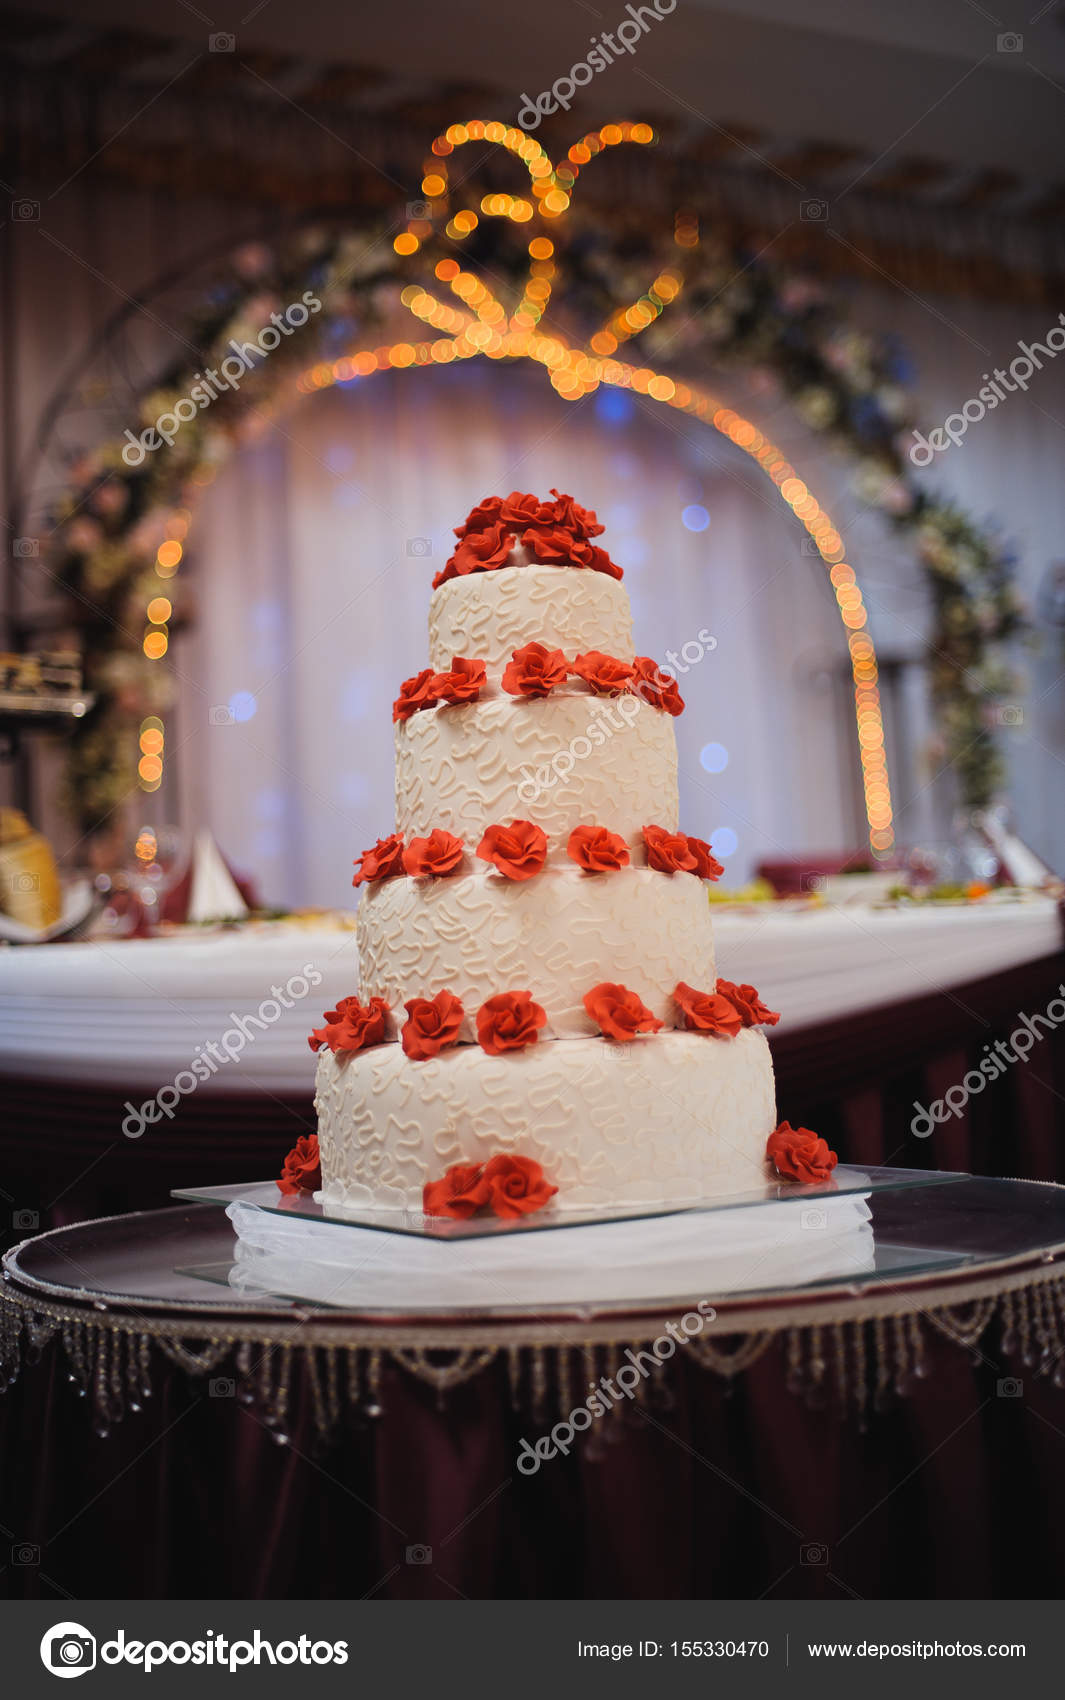 White wedding cake decorate red flowers on wedding stock photo white wedding cake decorate red flowers on wedding stock photo mightylinksfo